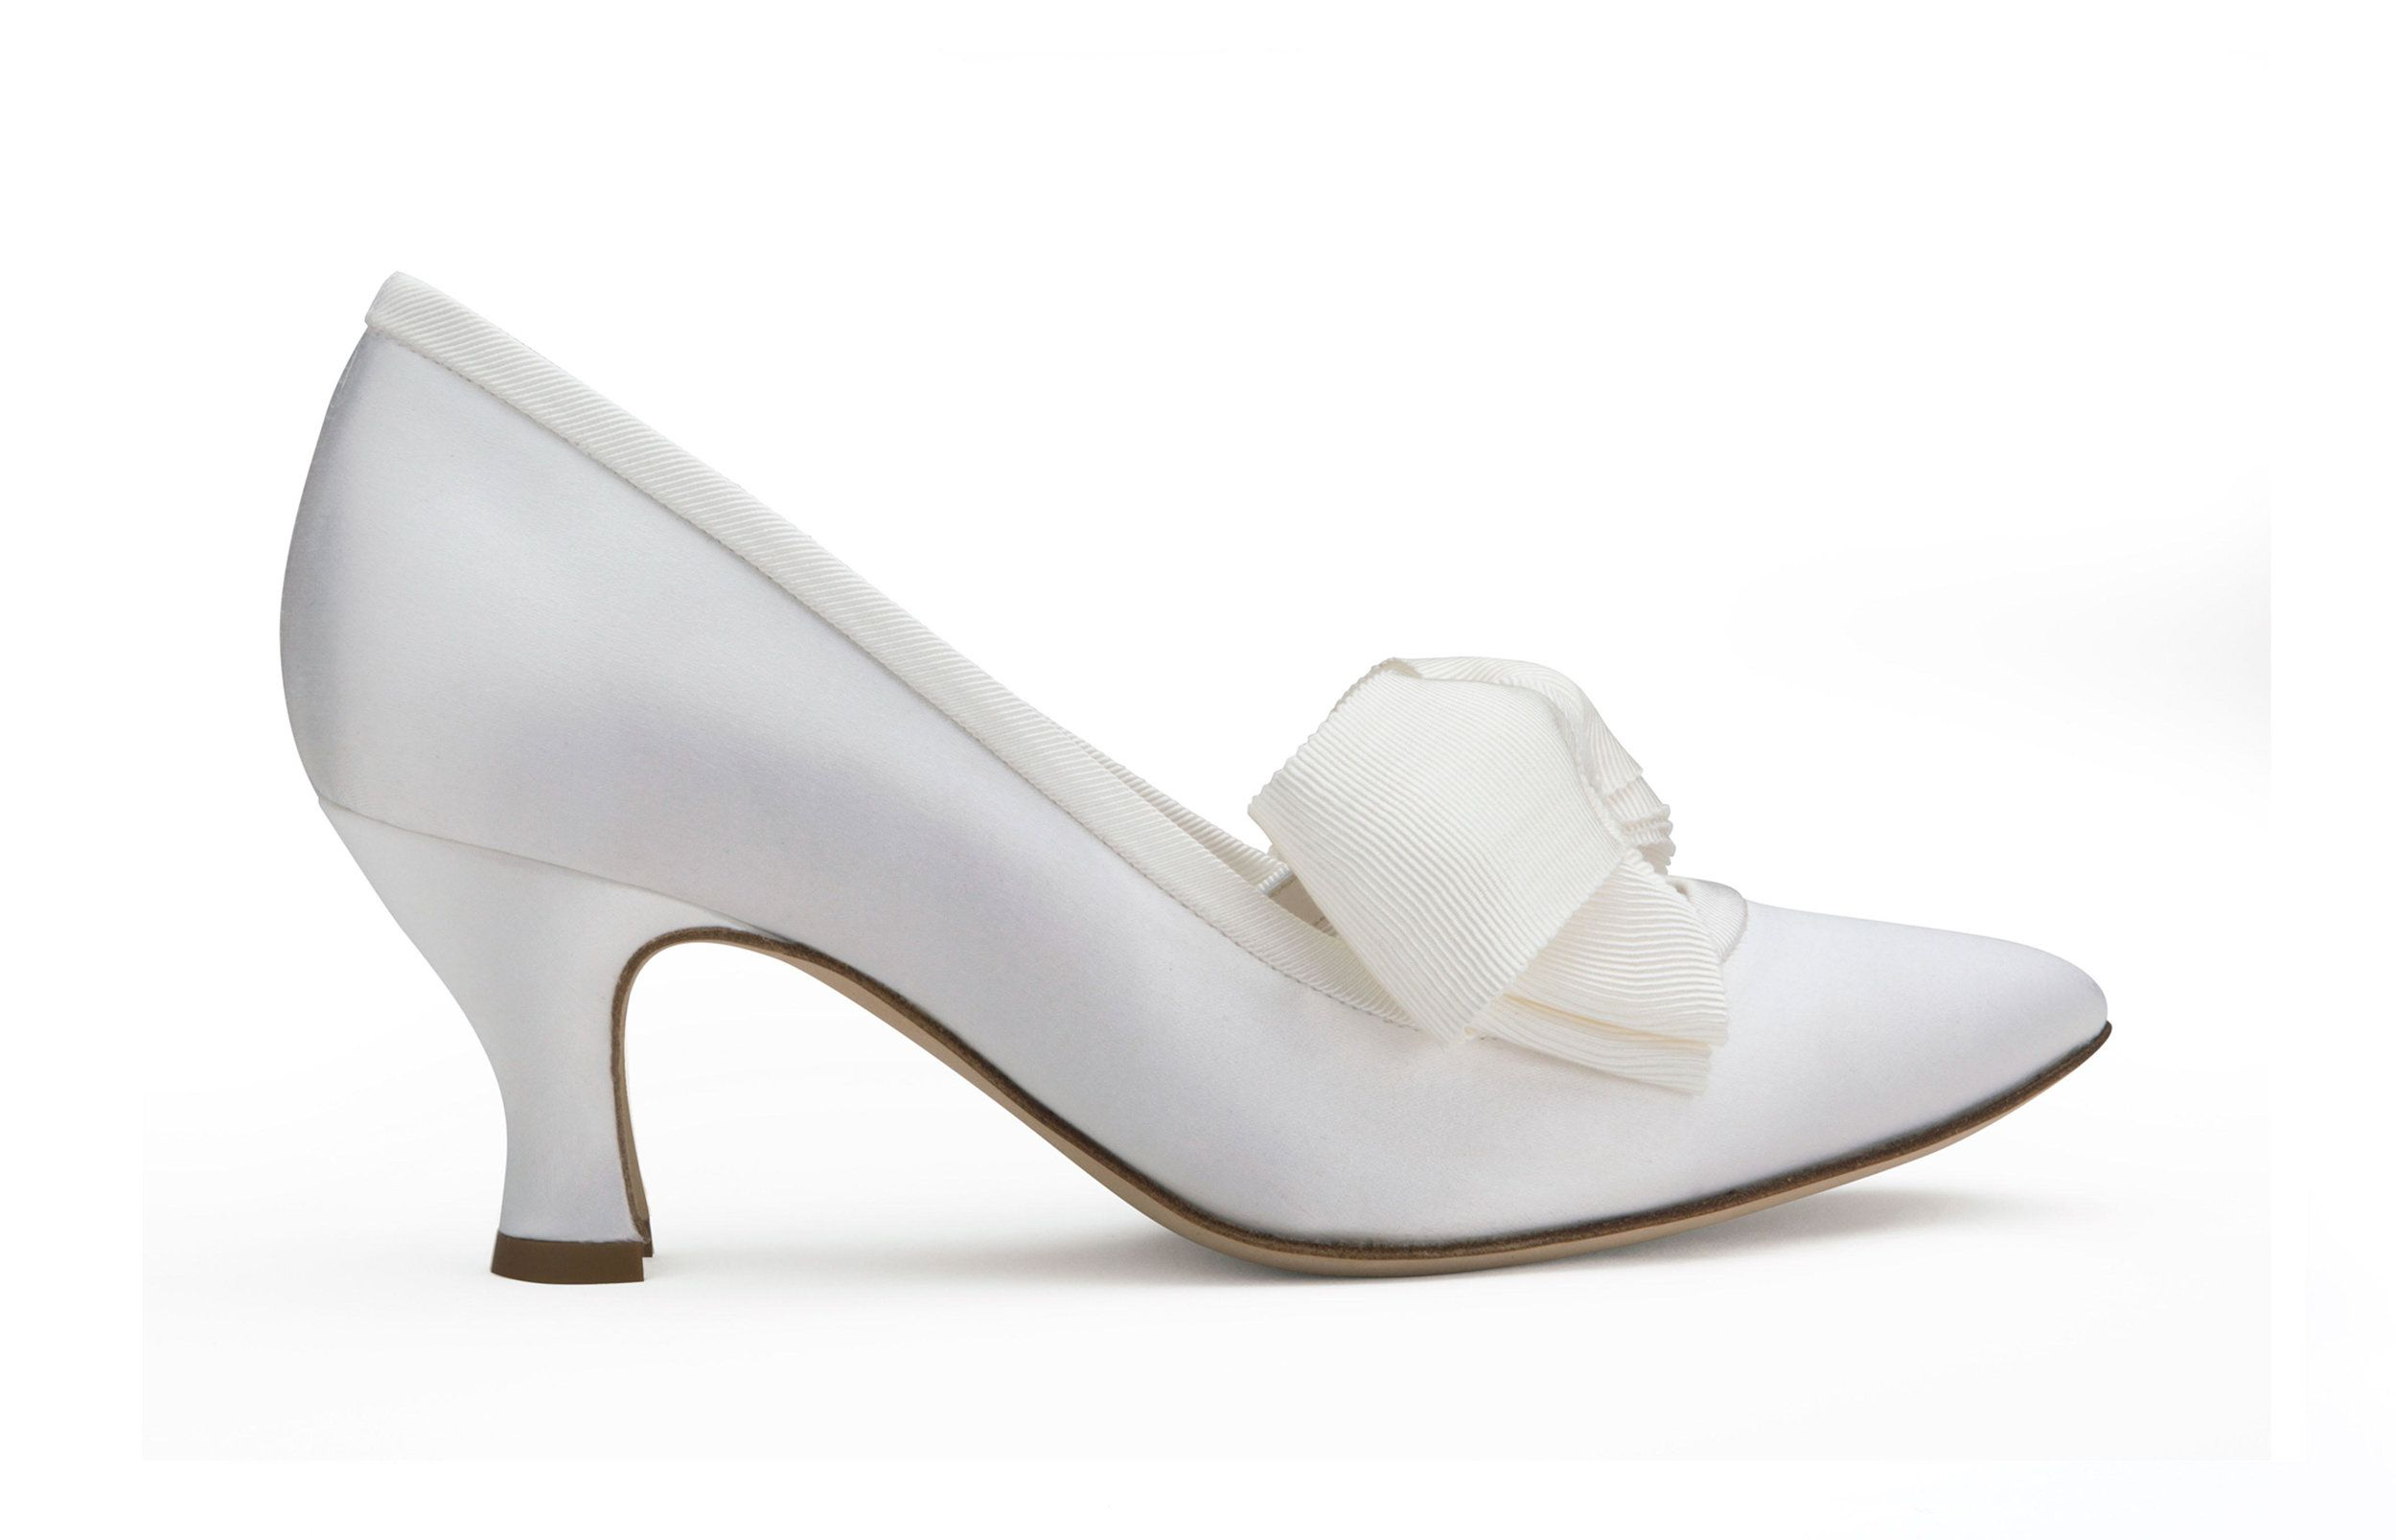 99c55ba3848 The first comfortable high-heeled wedding shoes with customizable arch  support! www.evelynford.luxury or info evelynford.luxury